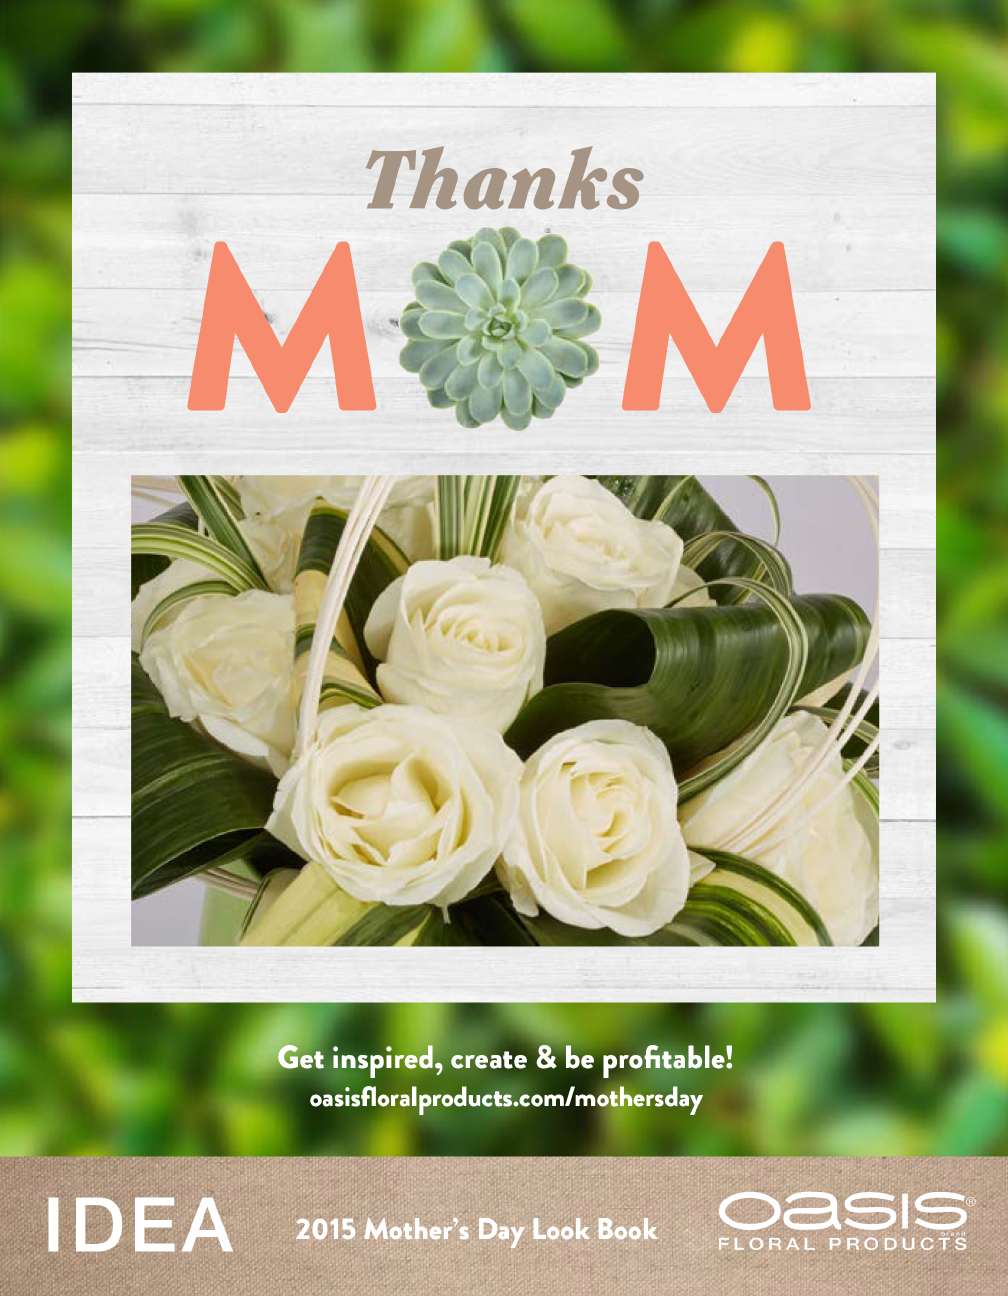 Smithers-Oasis_Mothers_Day_Lookbook_lauraguard_1